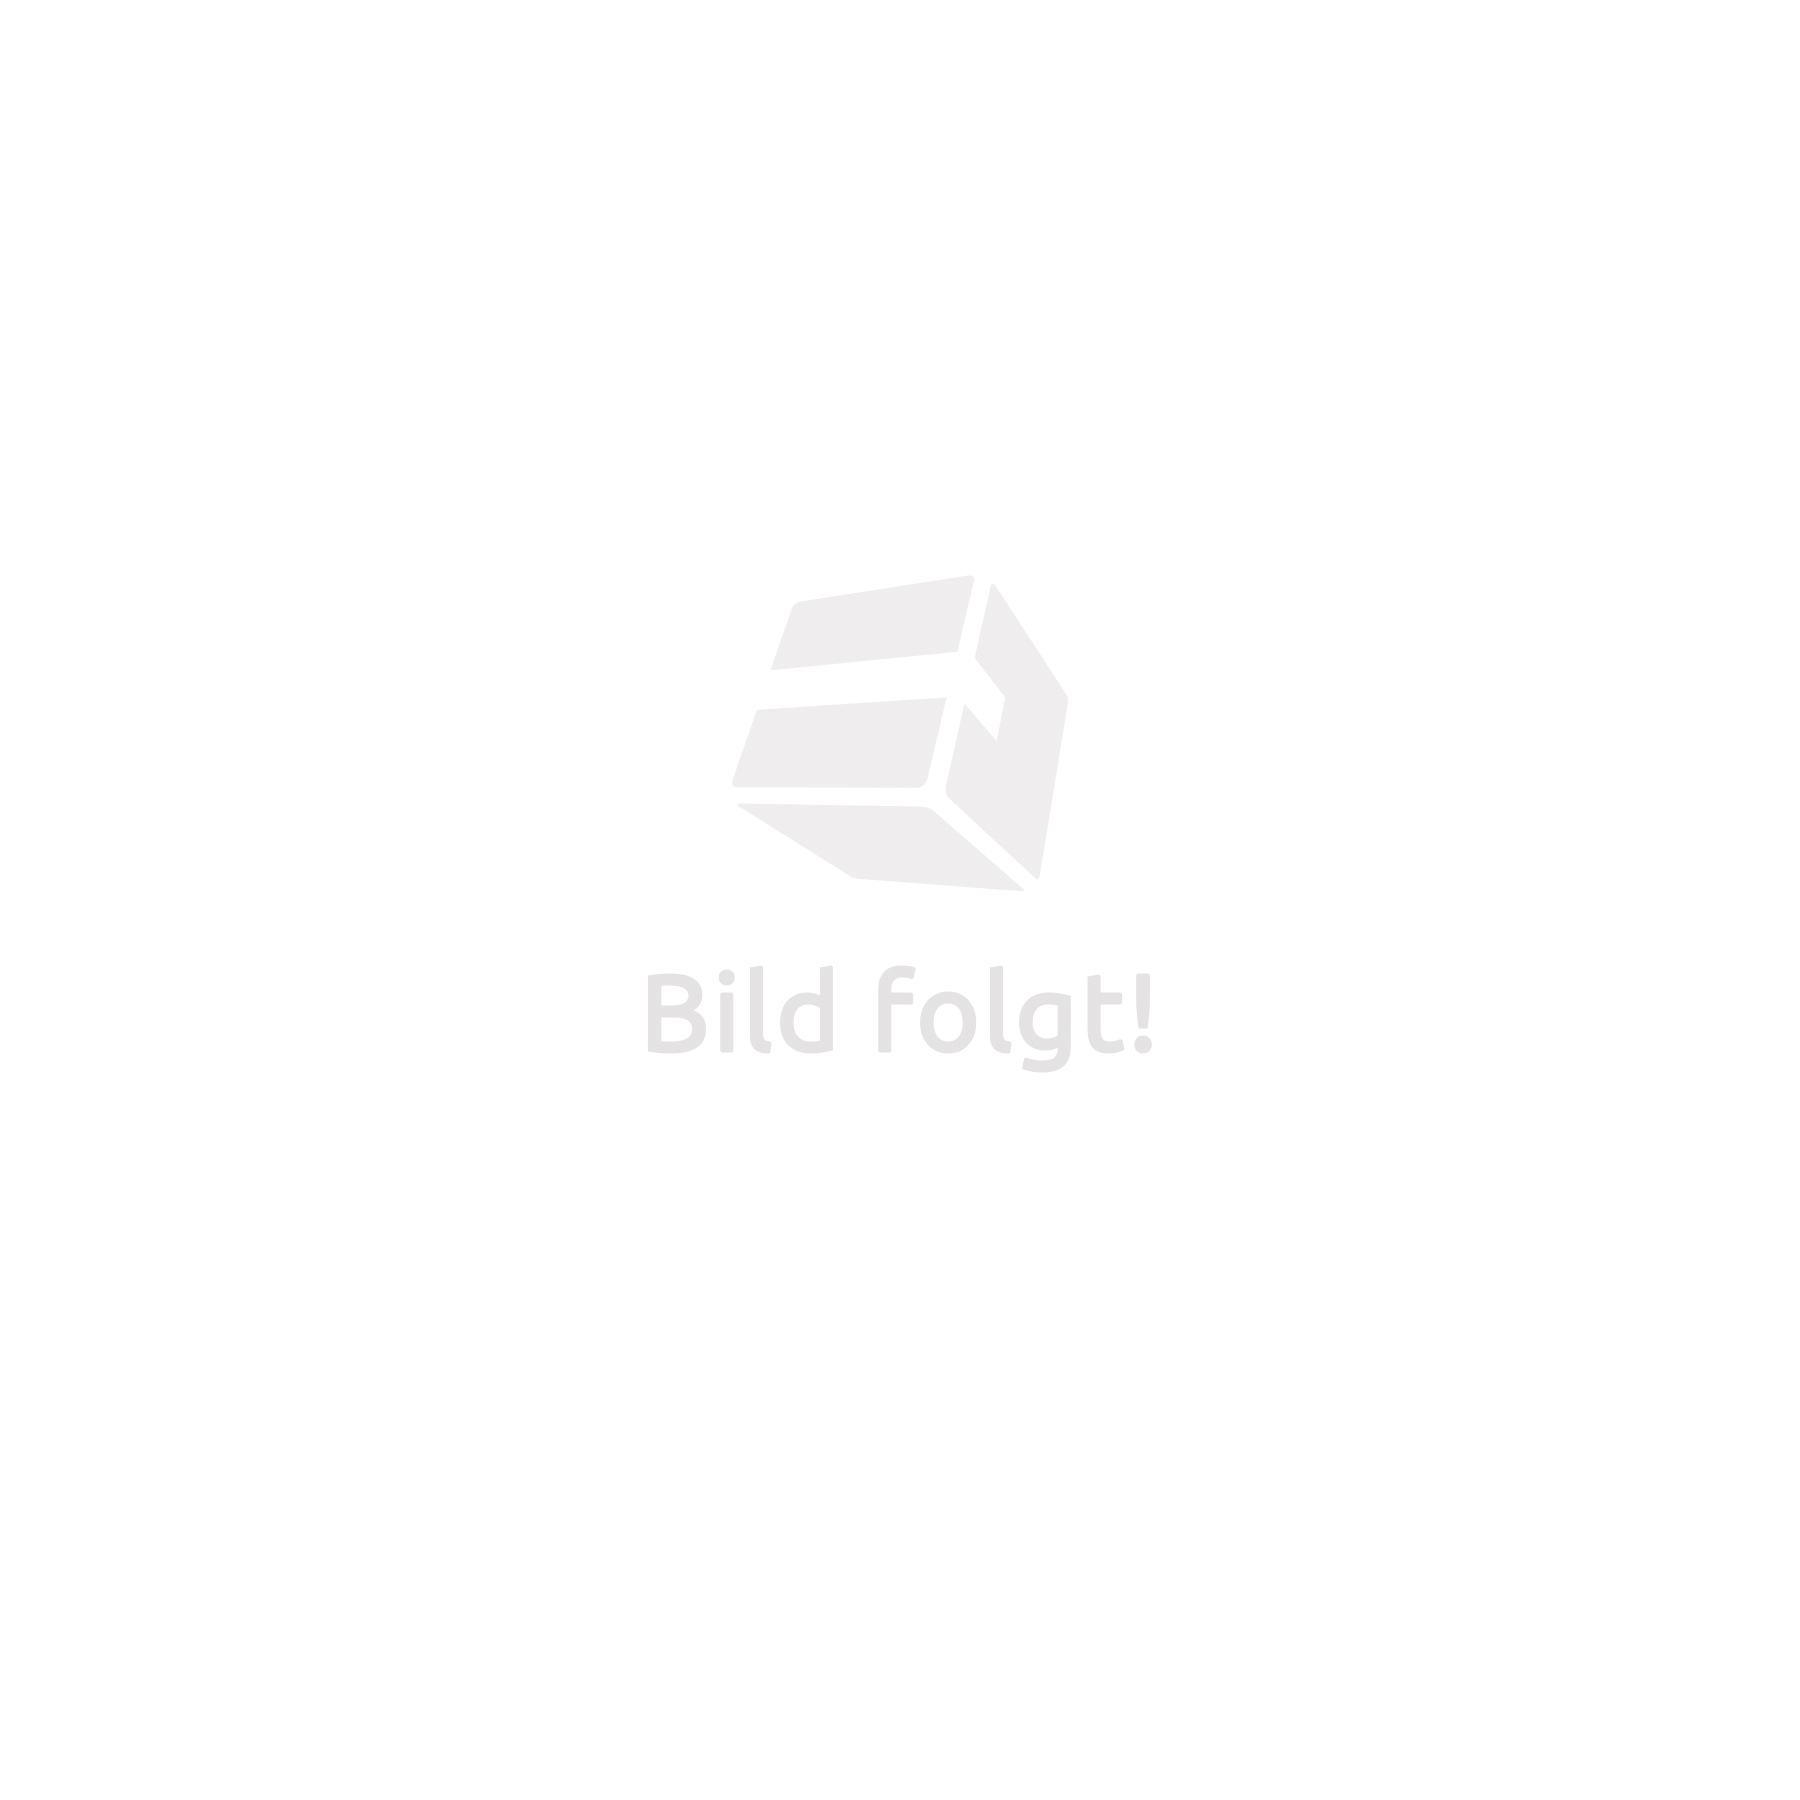 Tool box with 4 drawers 299 PCs.